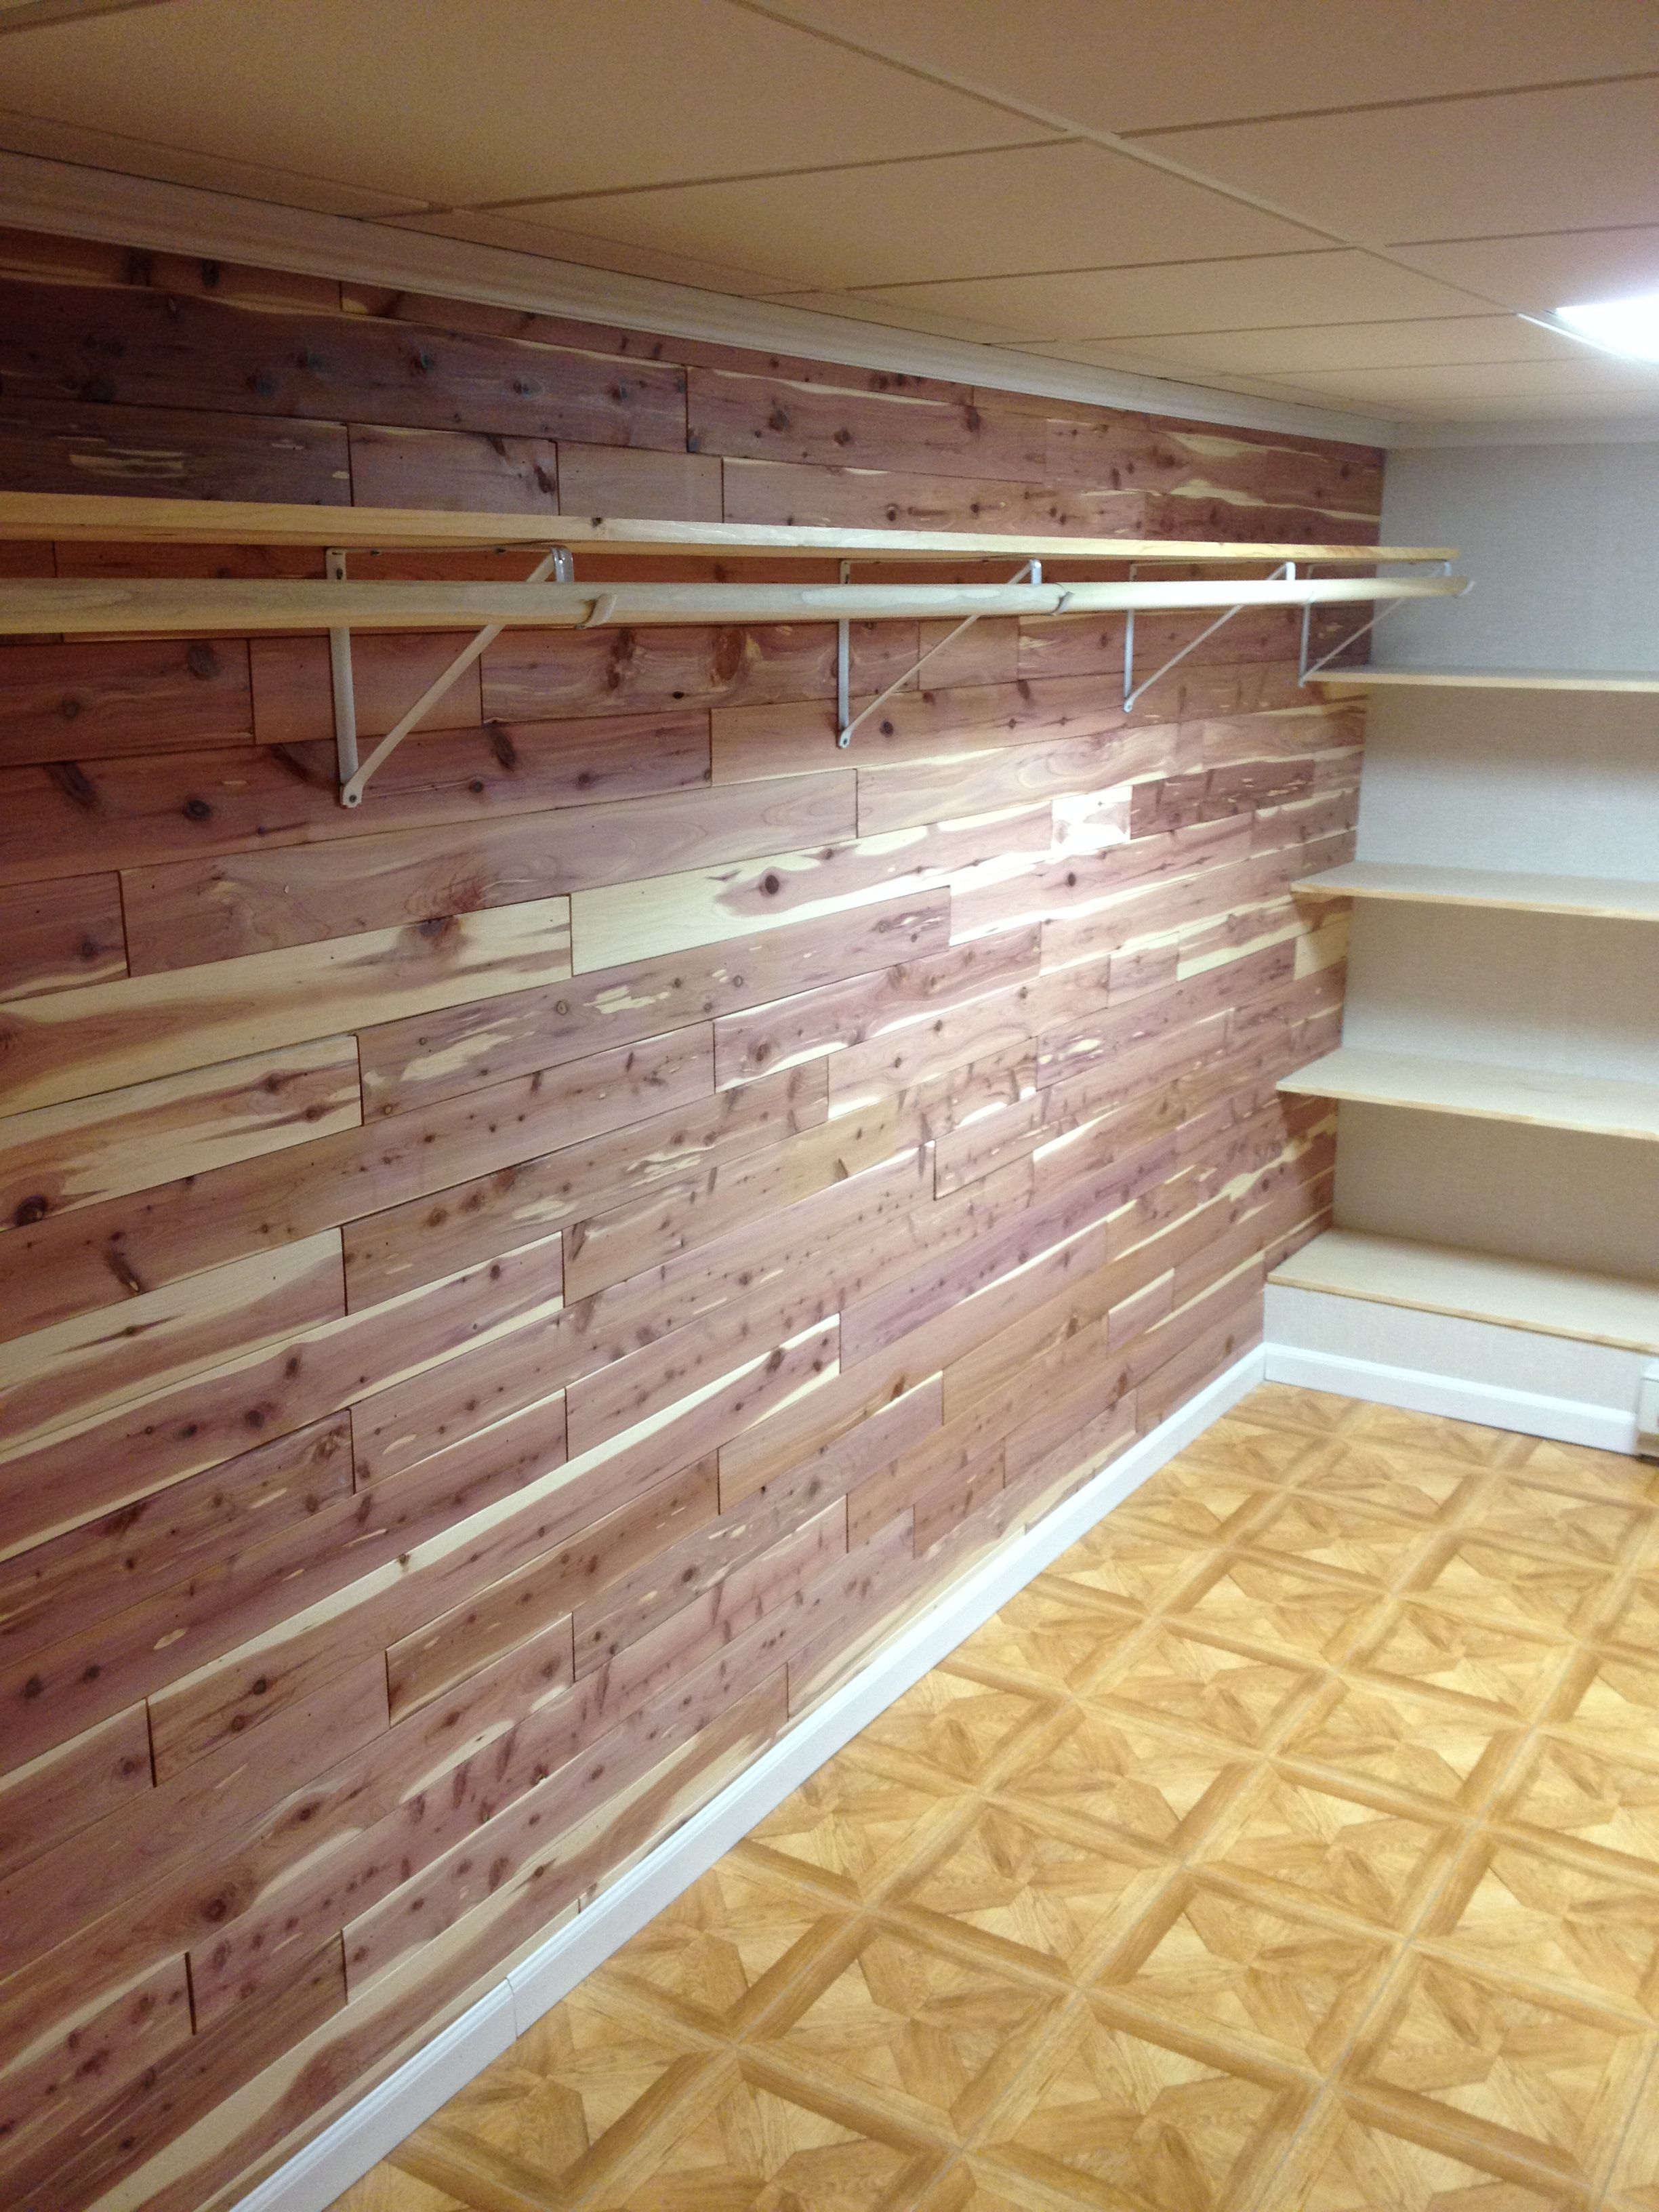 New Cedar Closet In The Basement! @Total Basement Finishing  #basementfinishing